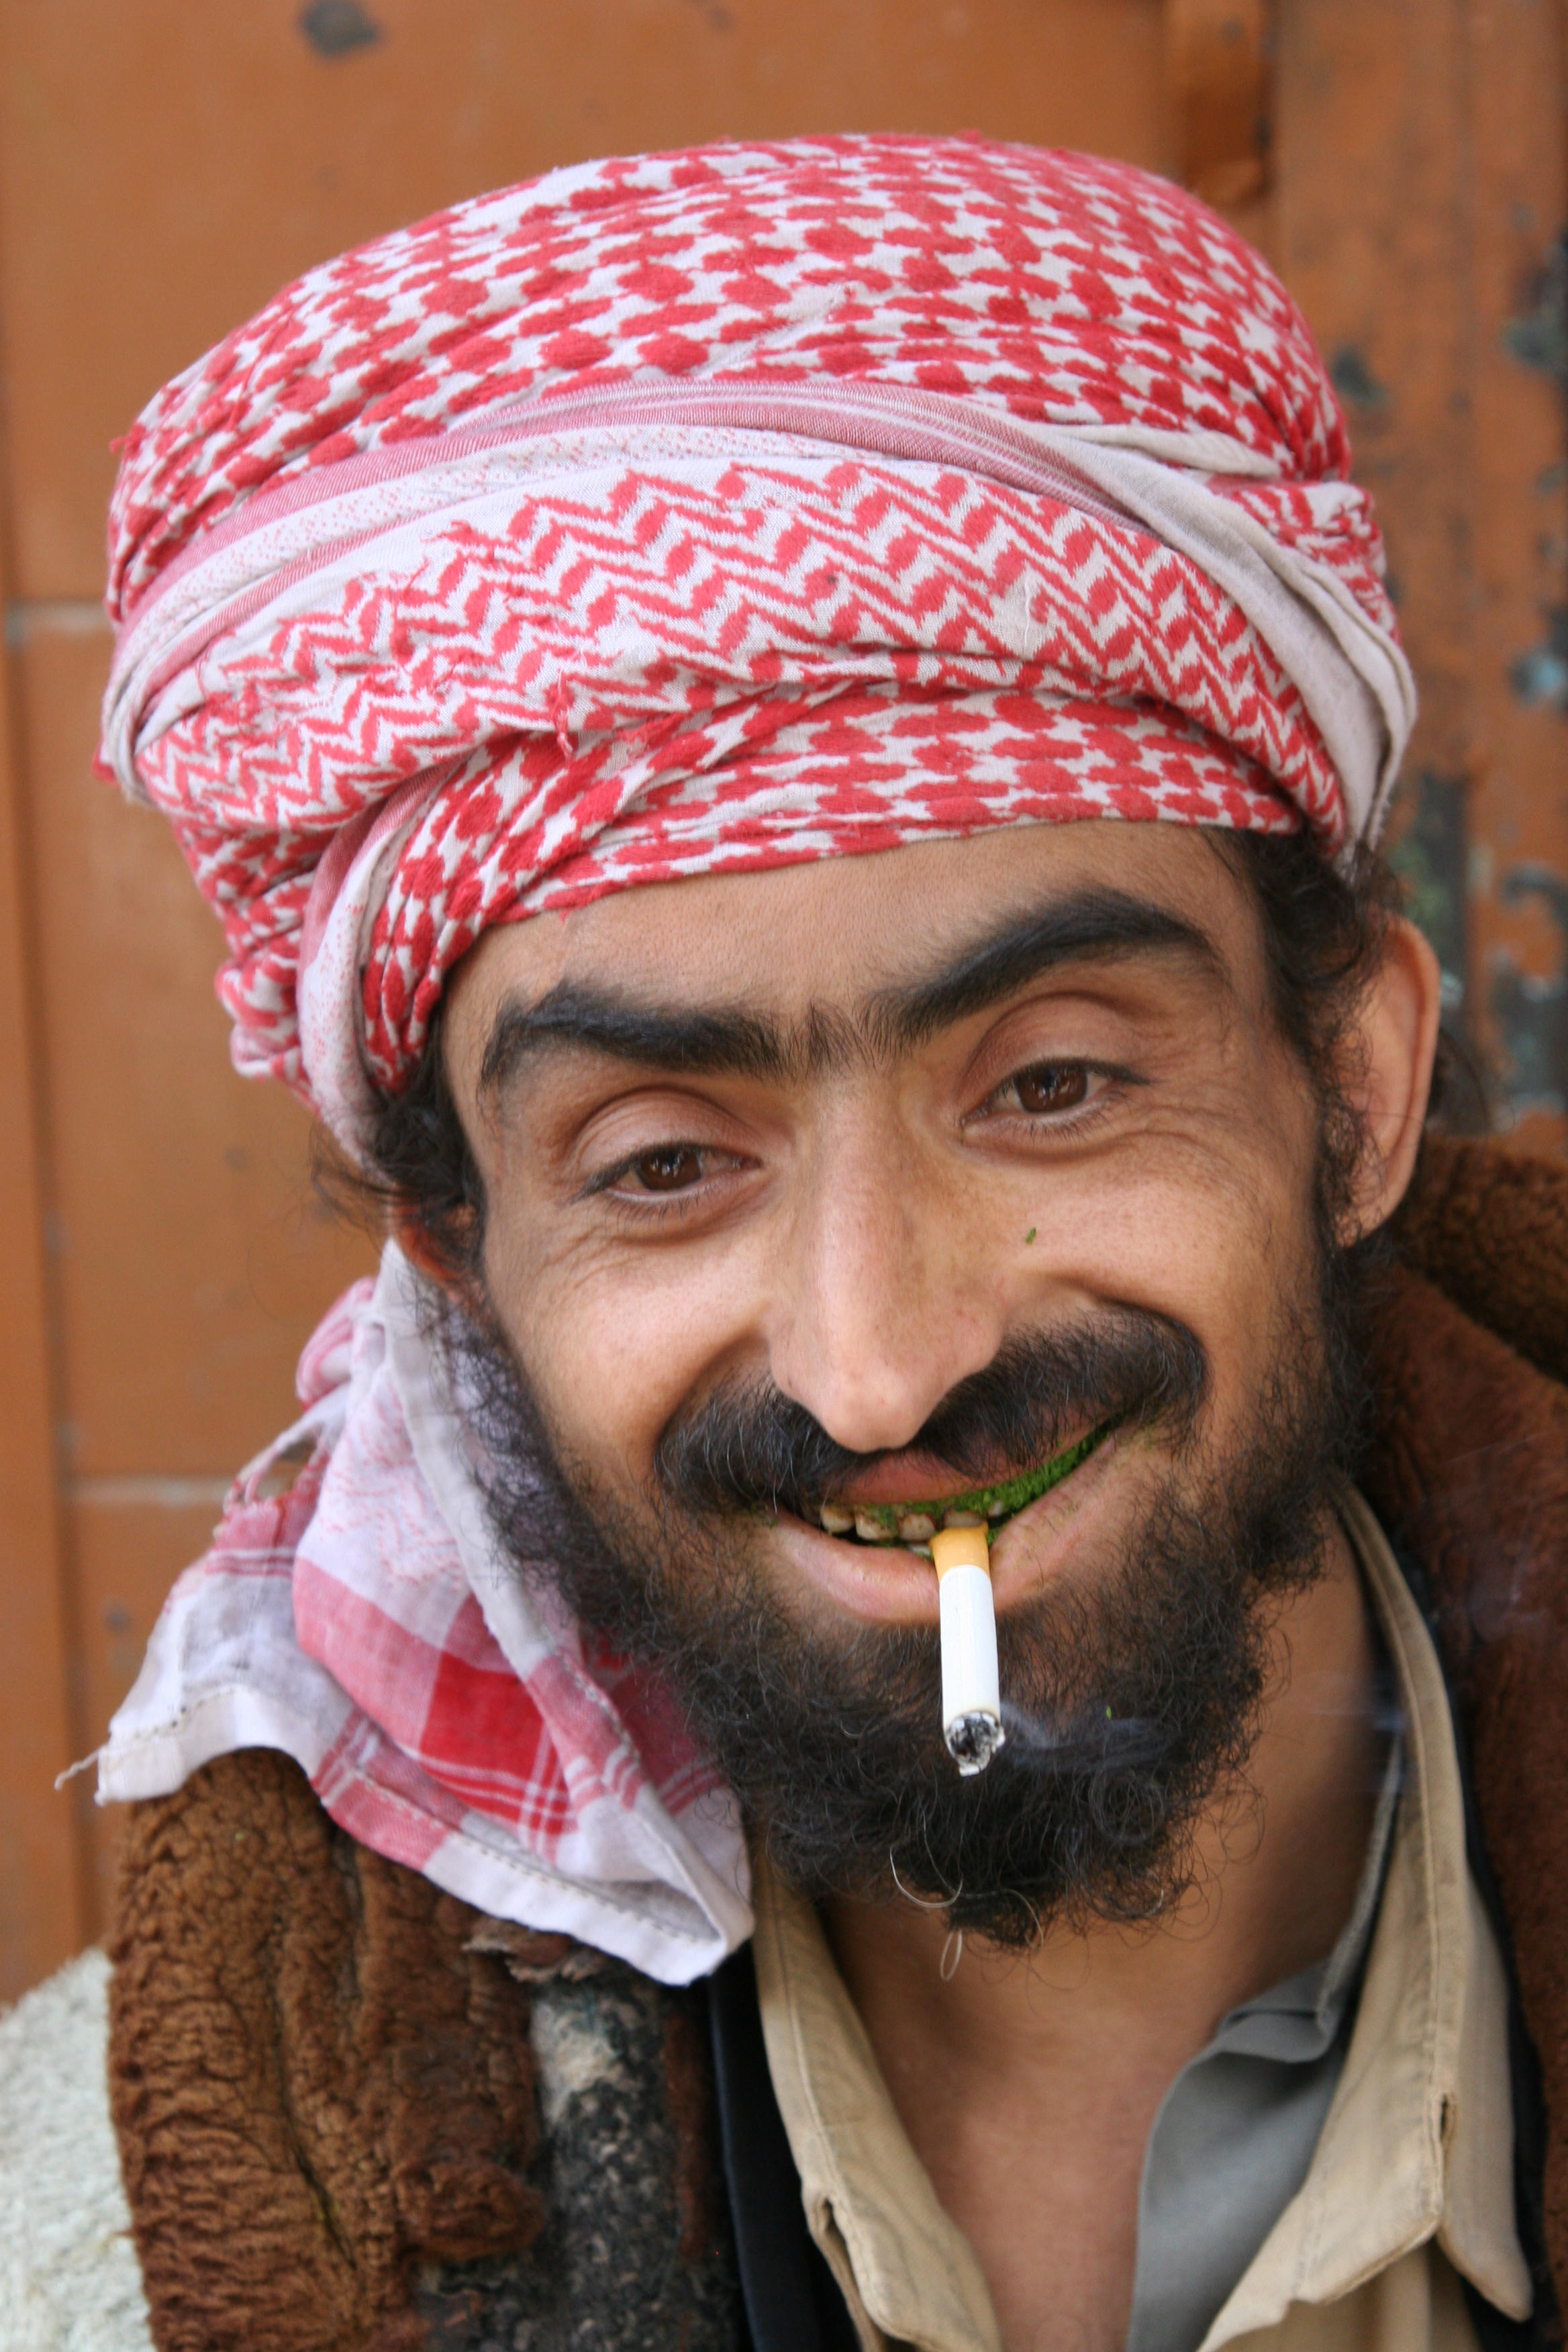 File:Yemen man1.jpg - Wikimedia Commons